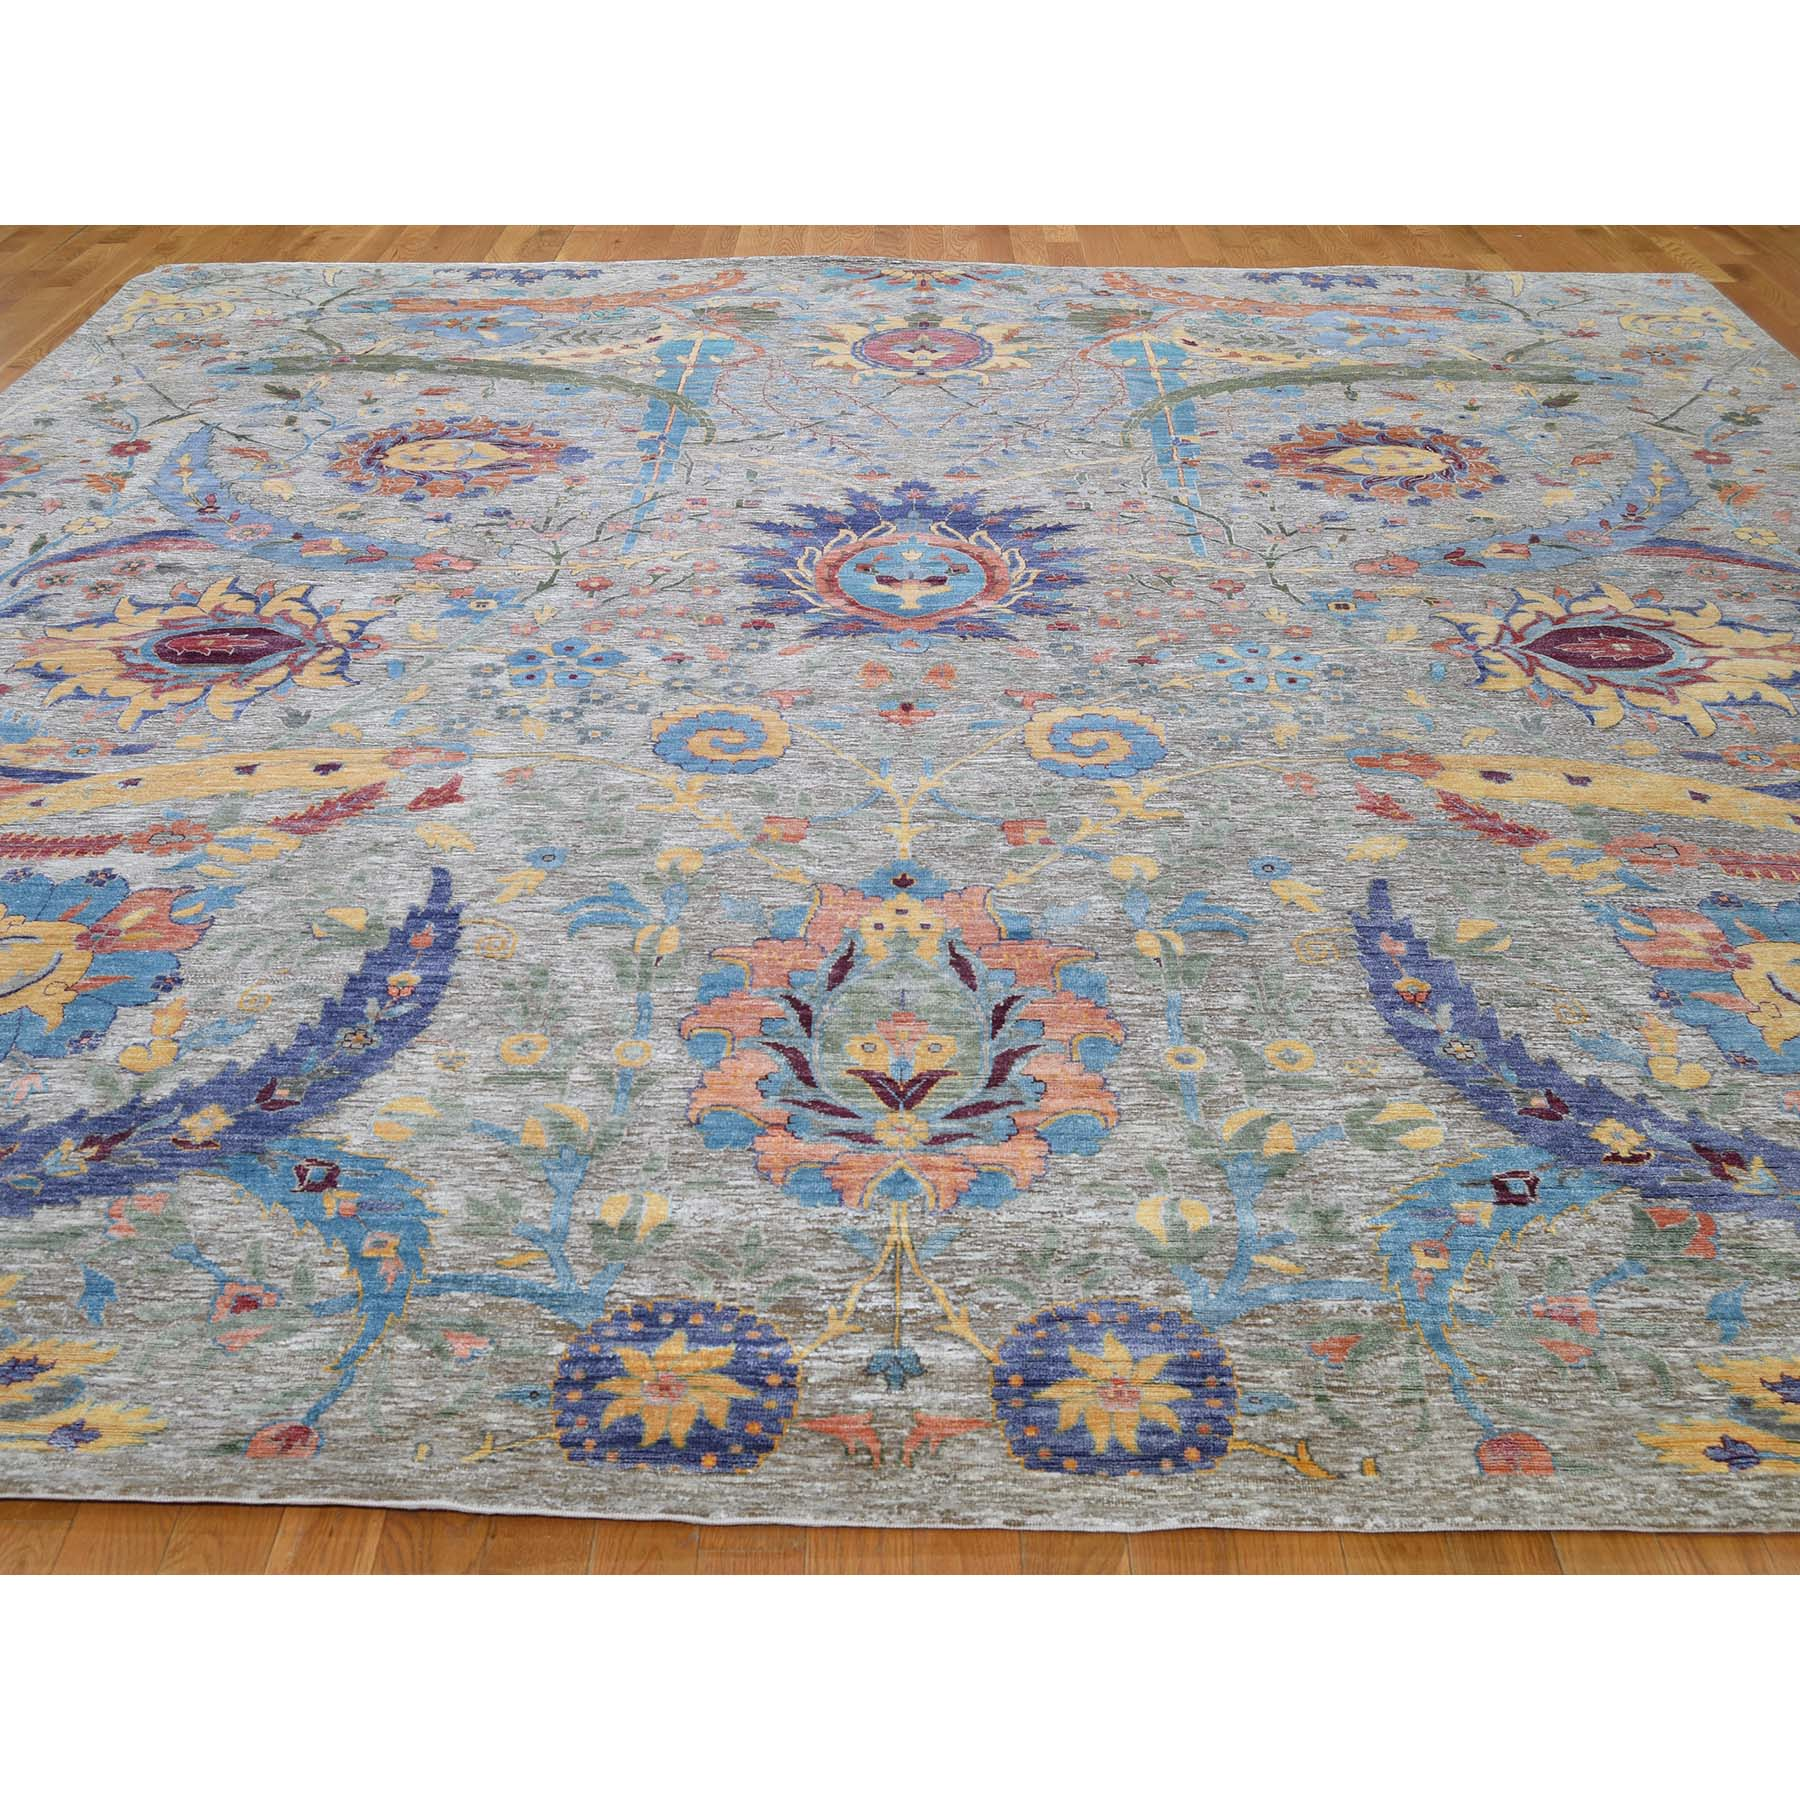 12-2 x12-2  Square Hand-Knotted Sickle Leaf Design Silk With Oxidized Wool Oriental Rug